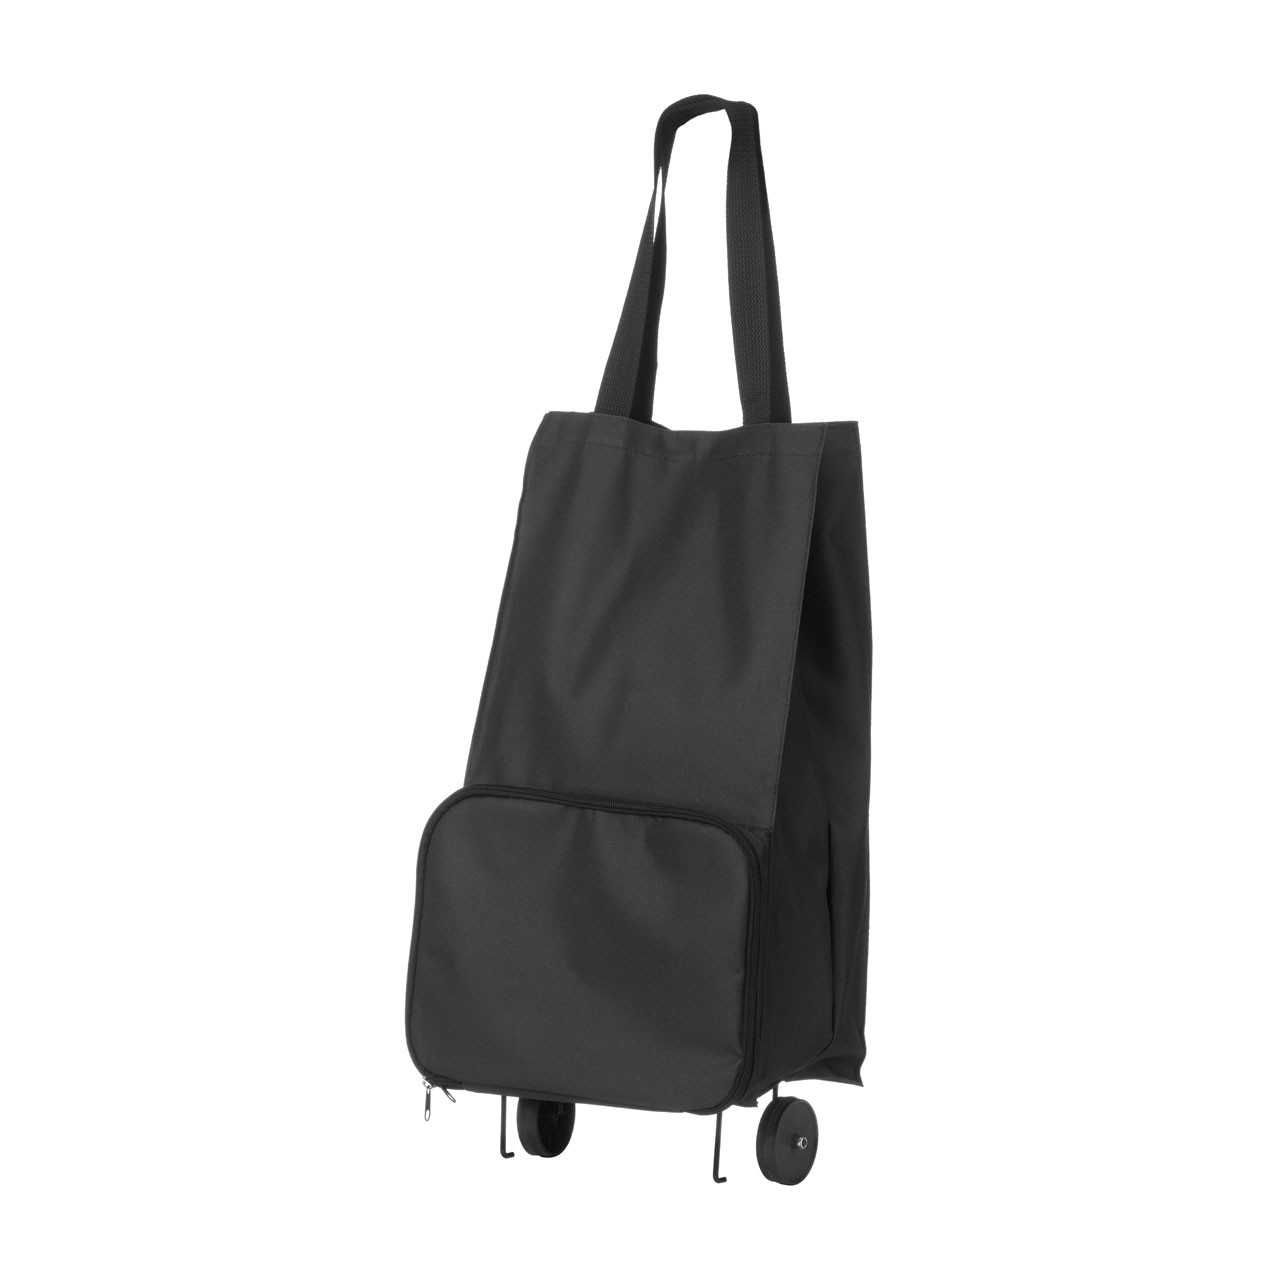 Prime Furnishing Oxford Trolley Bag - Black